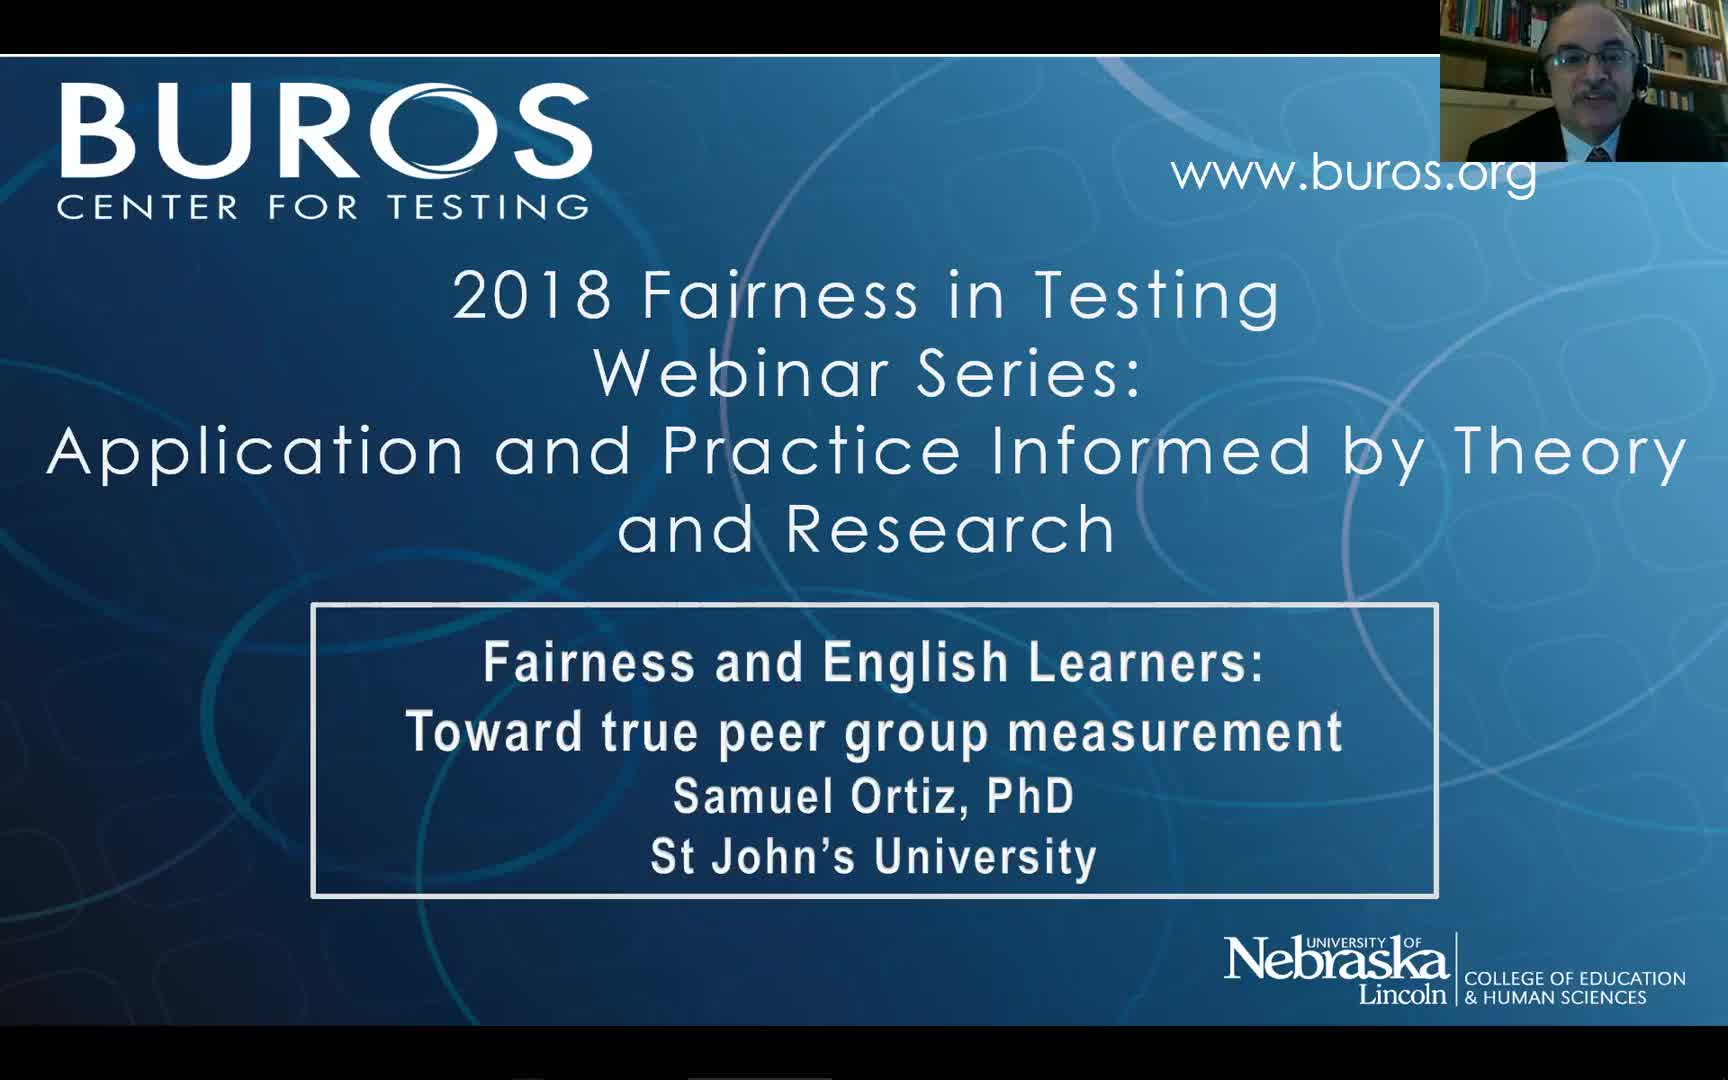 Fairness and English Learners